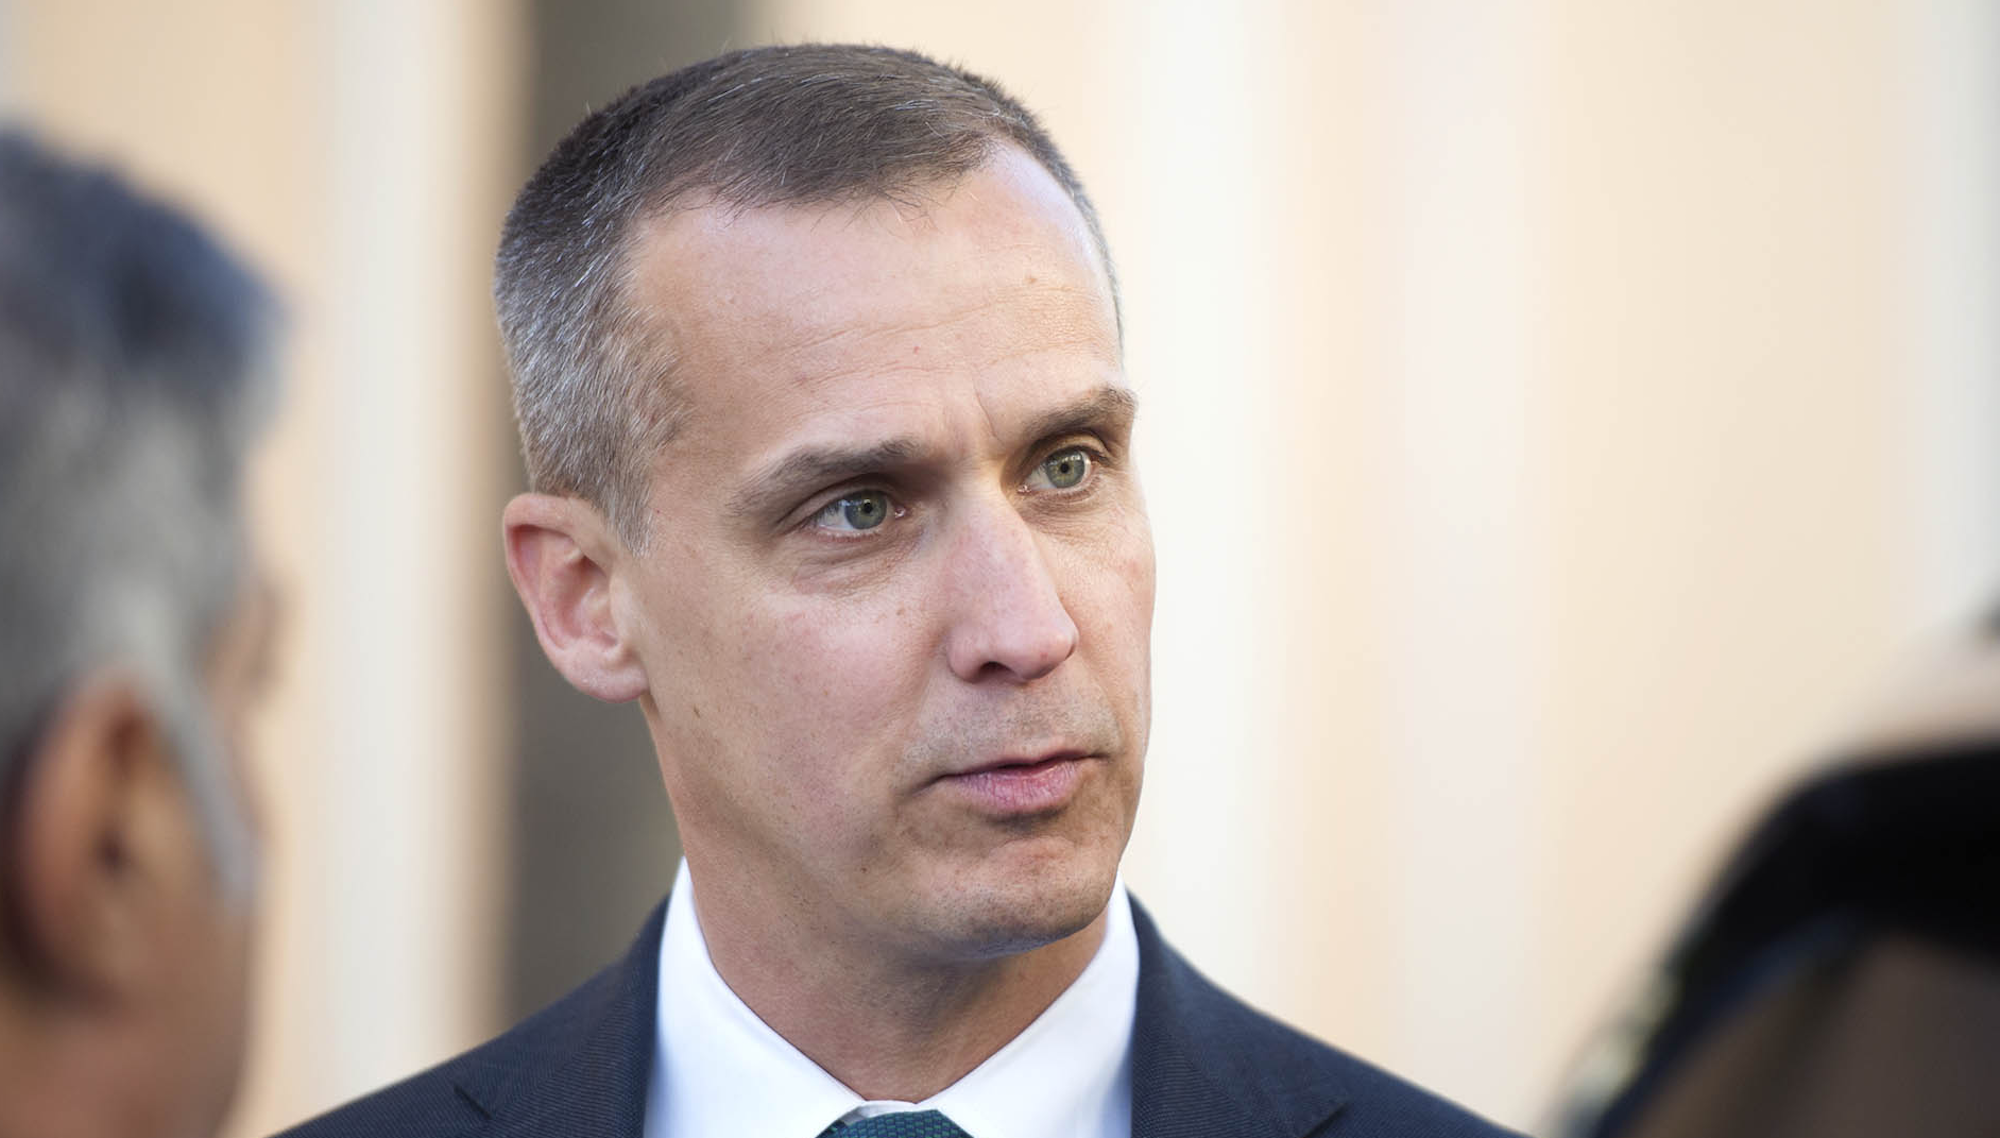 Corey Lewandowski Mocks Migrant Child With Down Syndrome